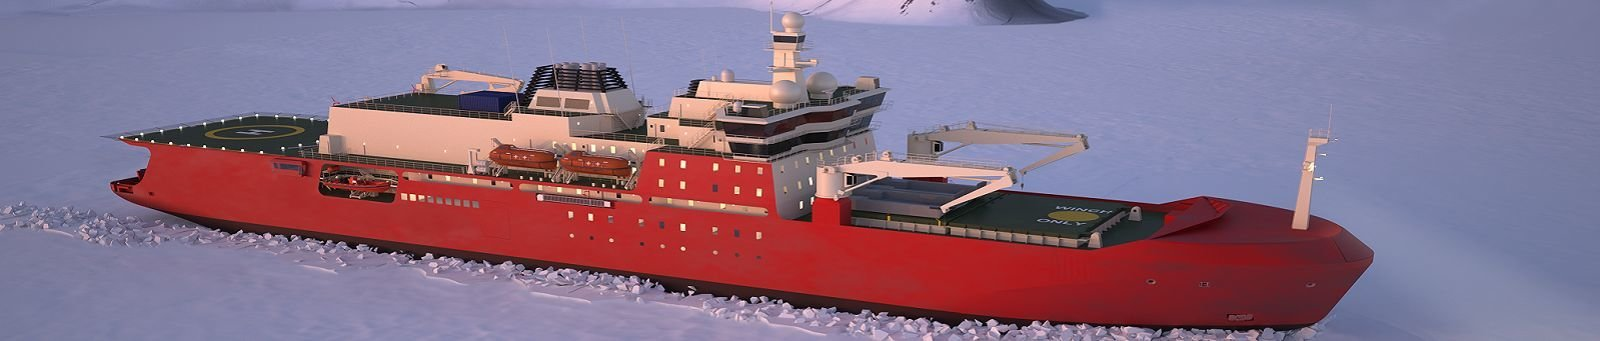 Heinen & Hopman to supply HVAC for Antarctic Supply Research Vessel